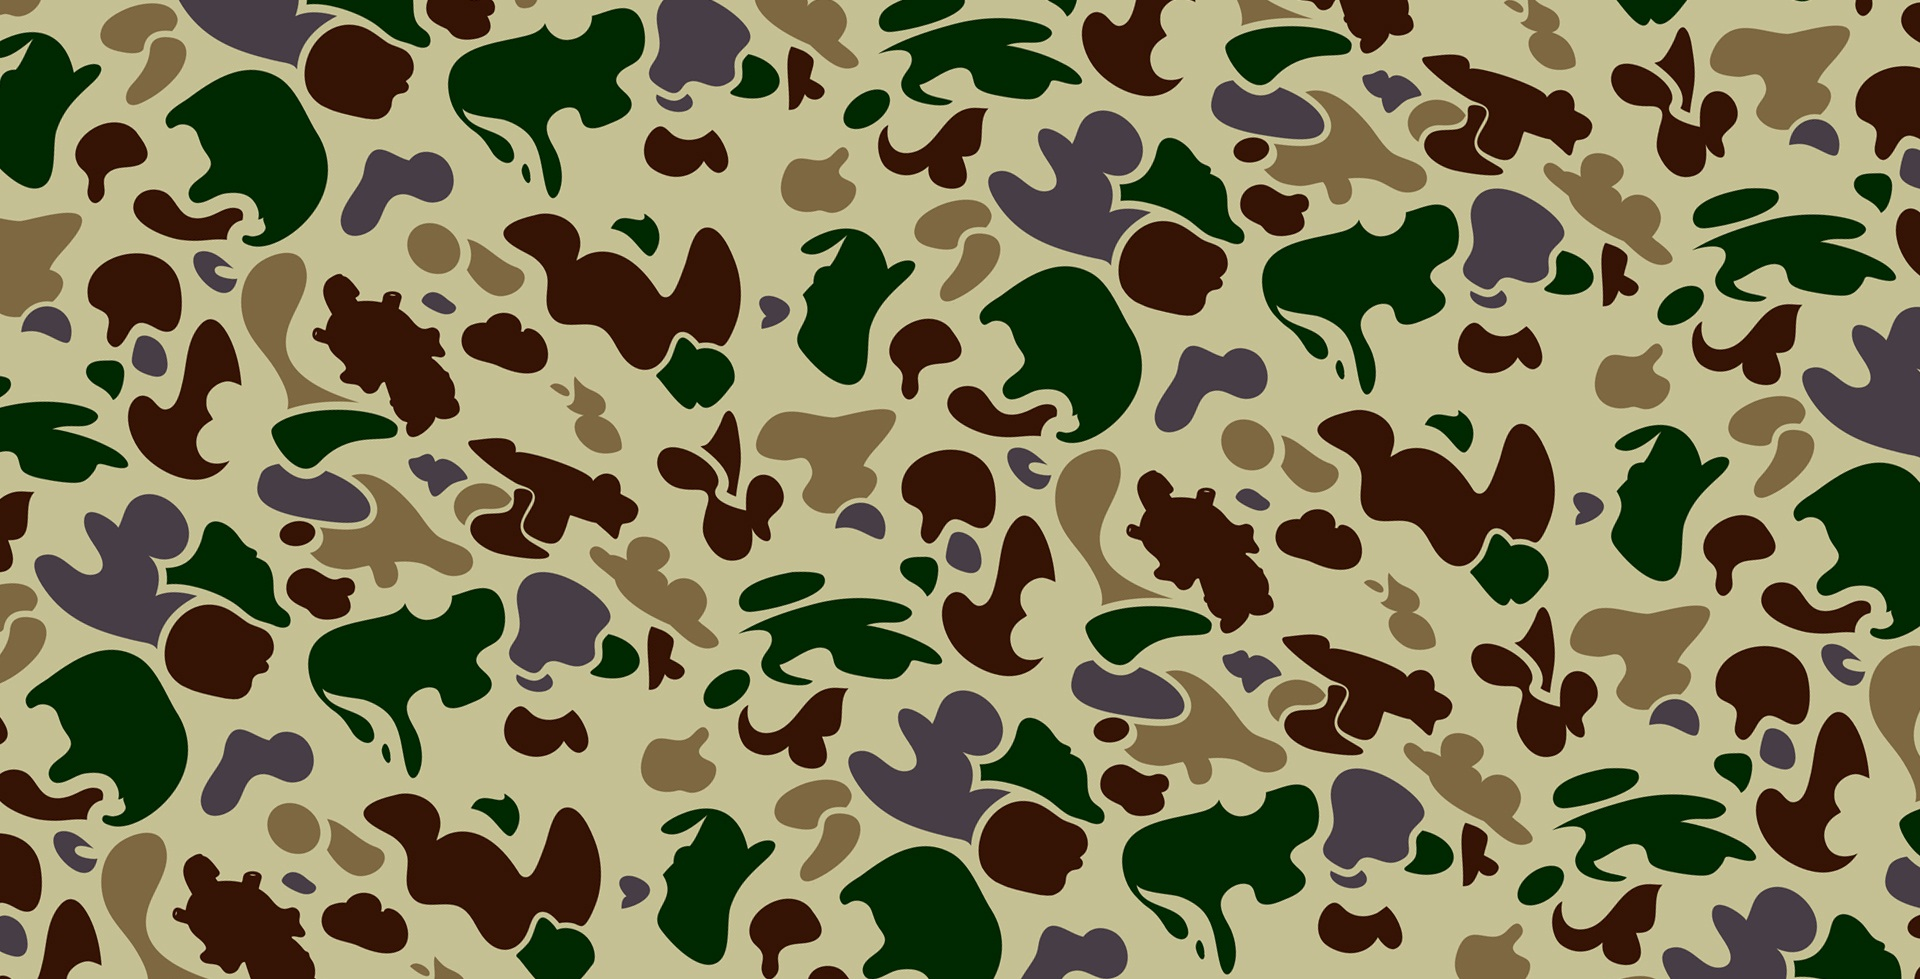 bape camo iphone wallpaper wallpapersafari